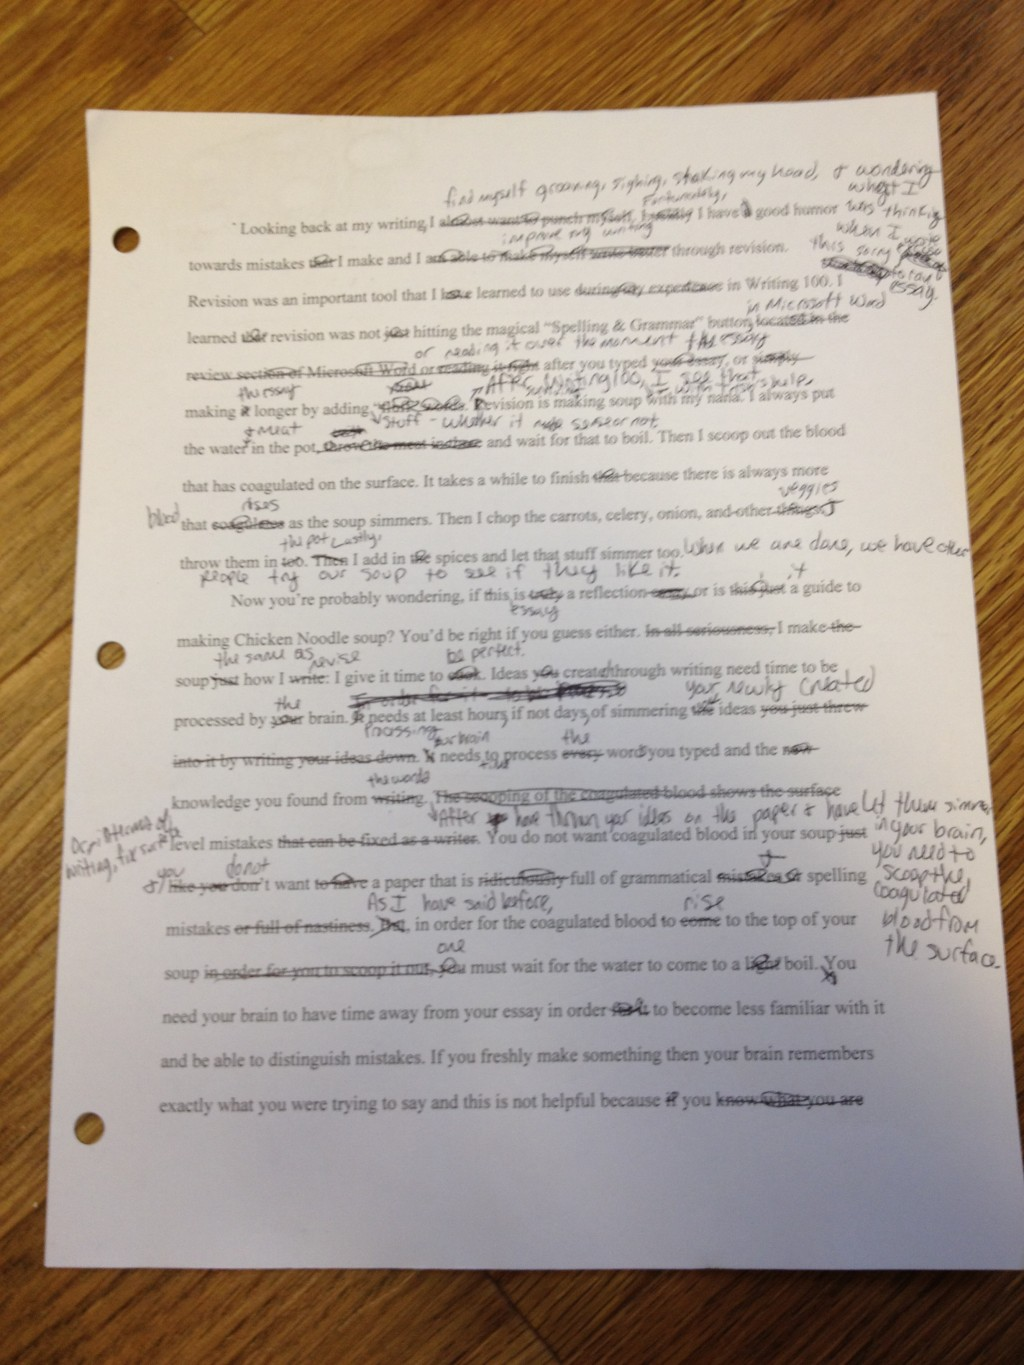 017 Research Paper How Can You Make Longer Photo Archaicawful A To Get Large